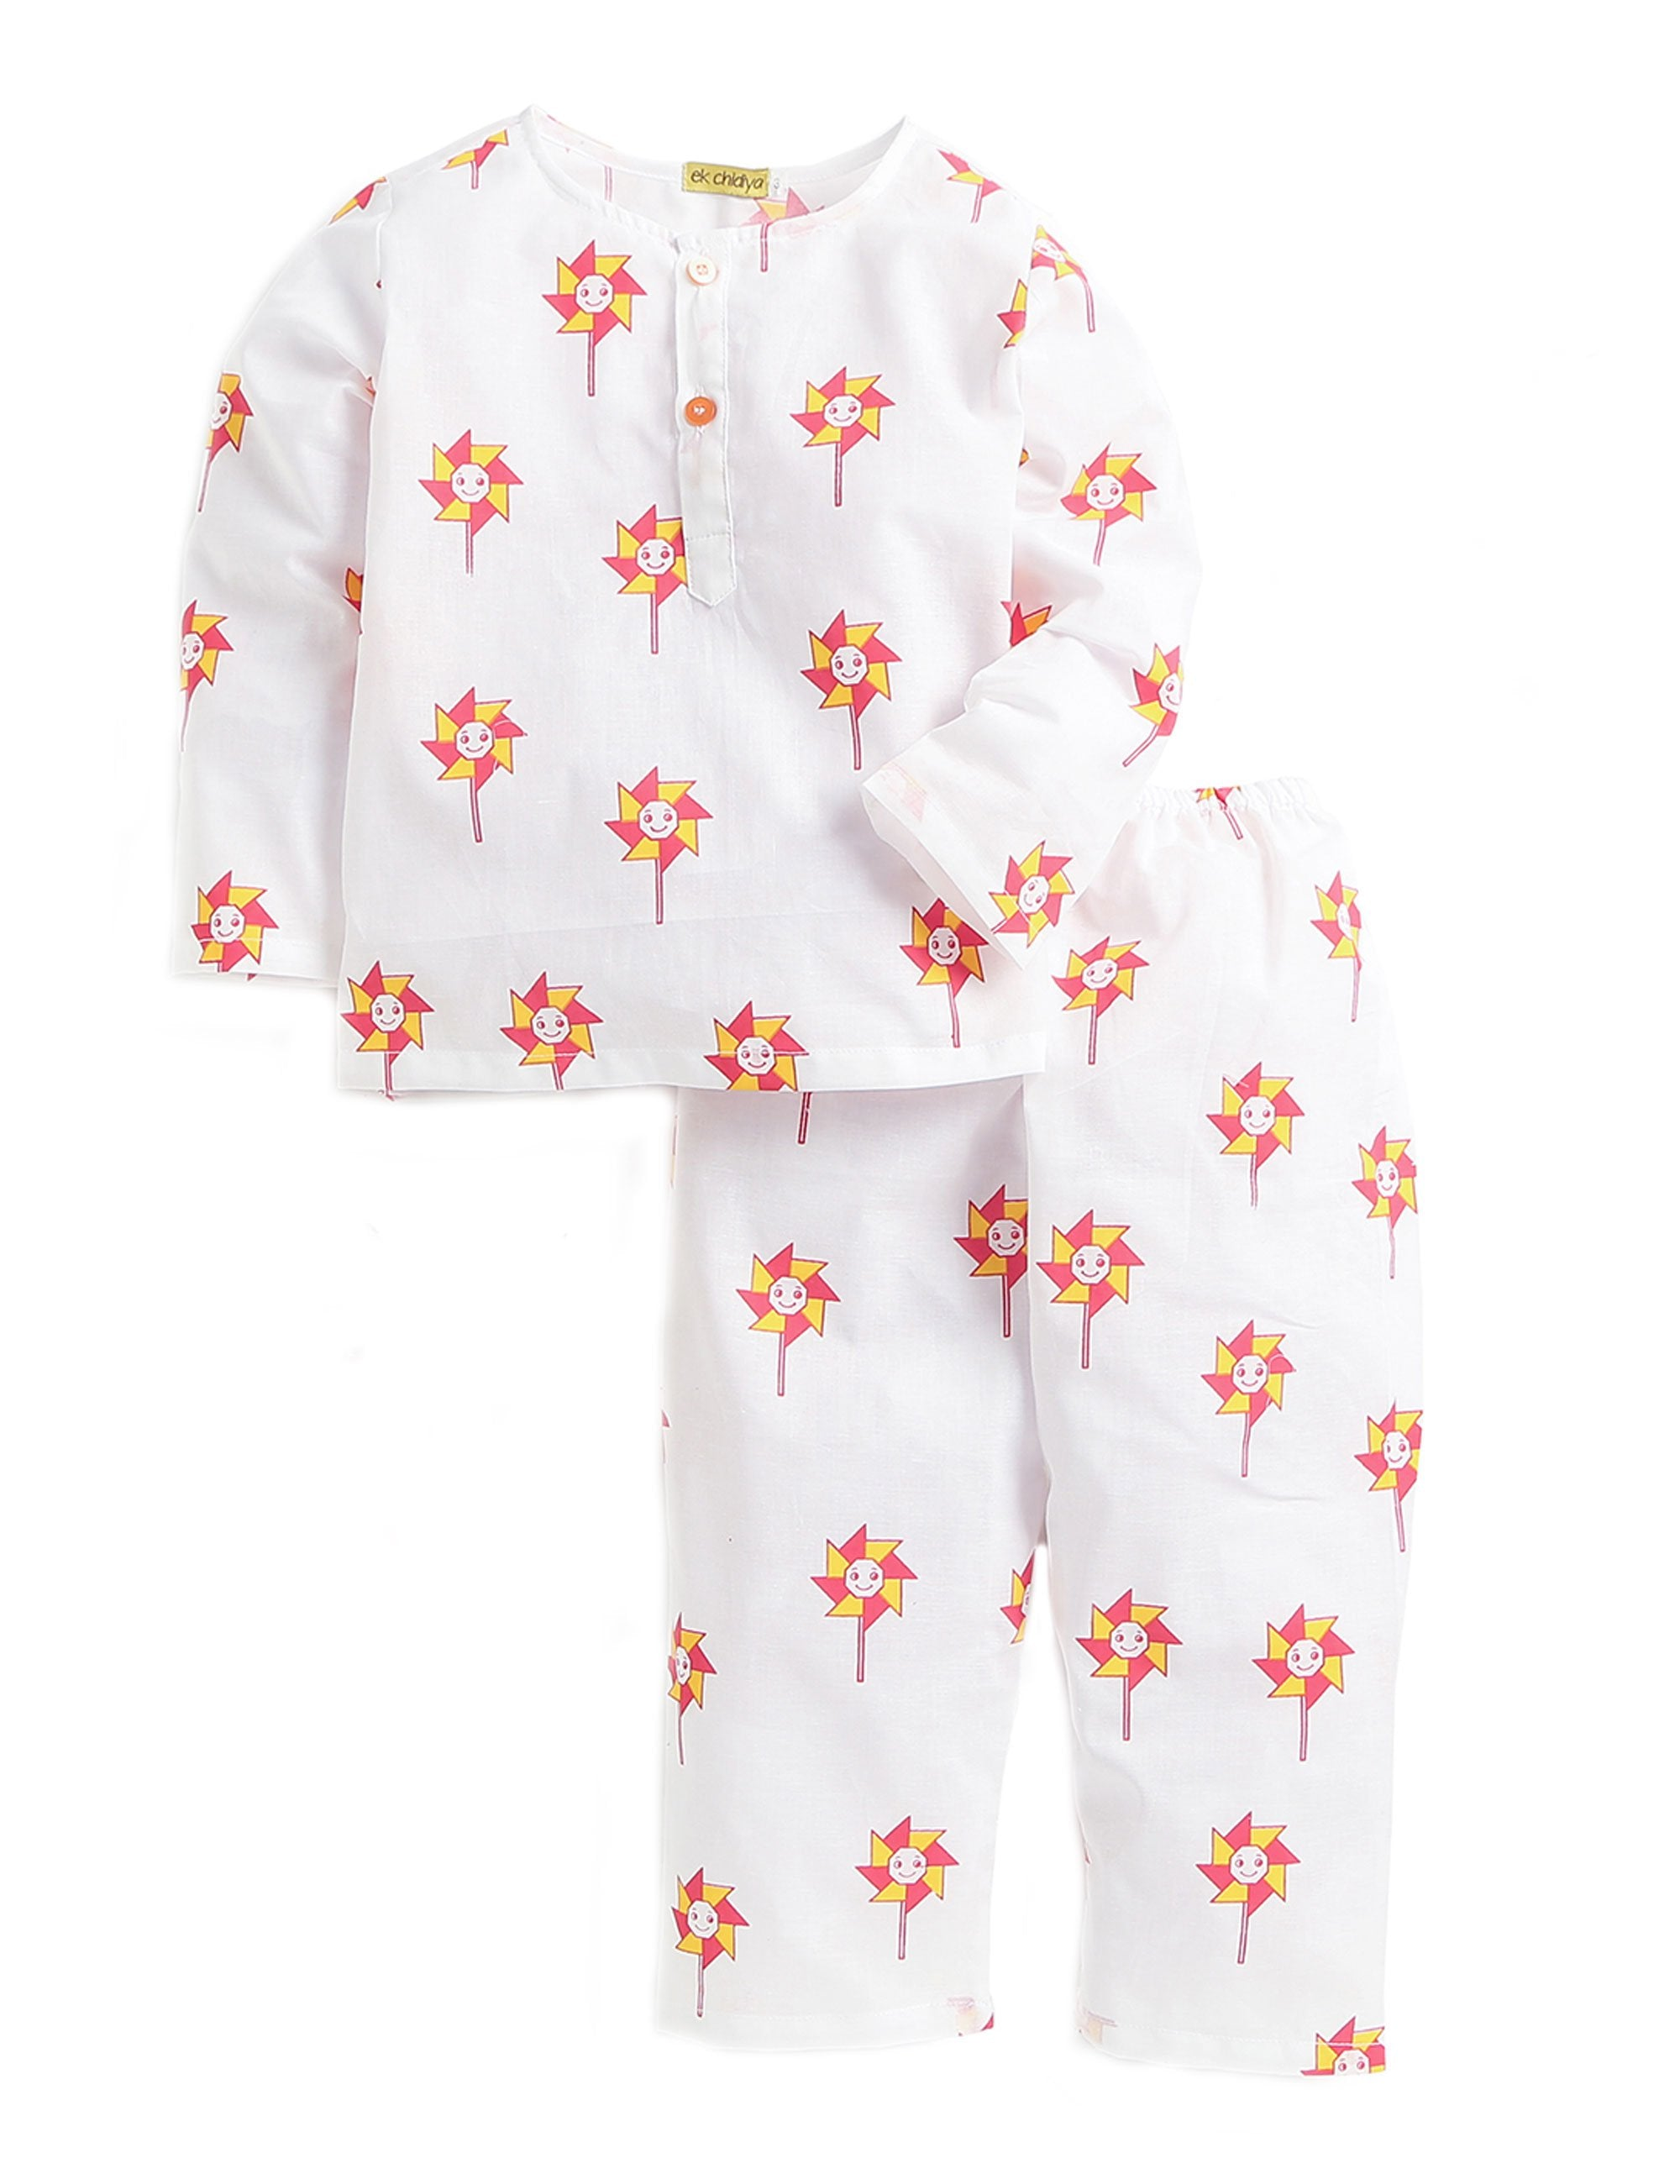 Pinwheel Printed Nightwear In White and Orange Colour for Boys and Girls